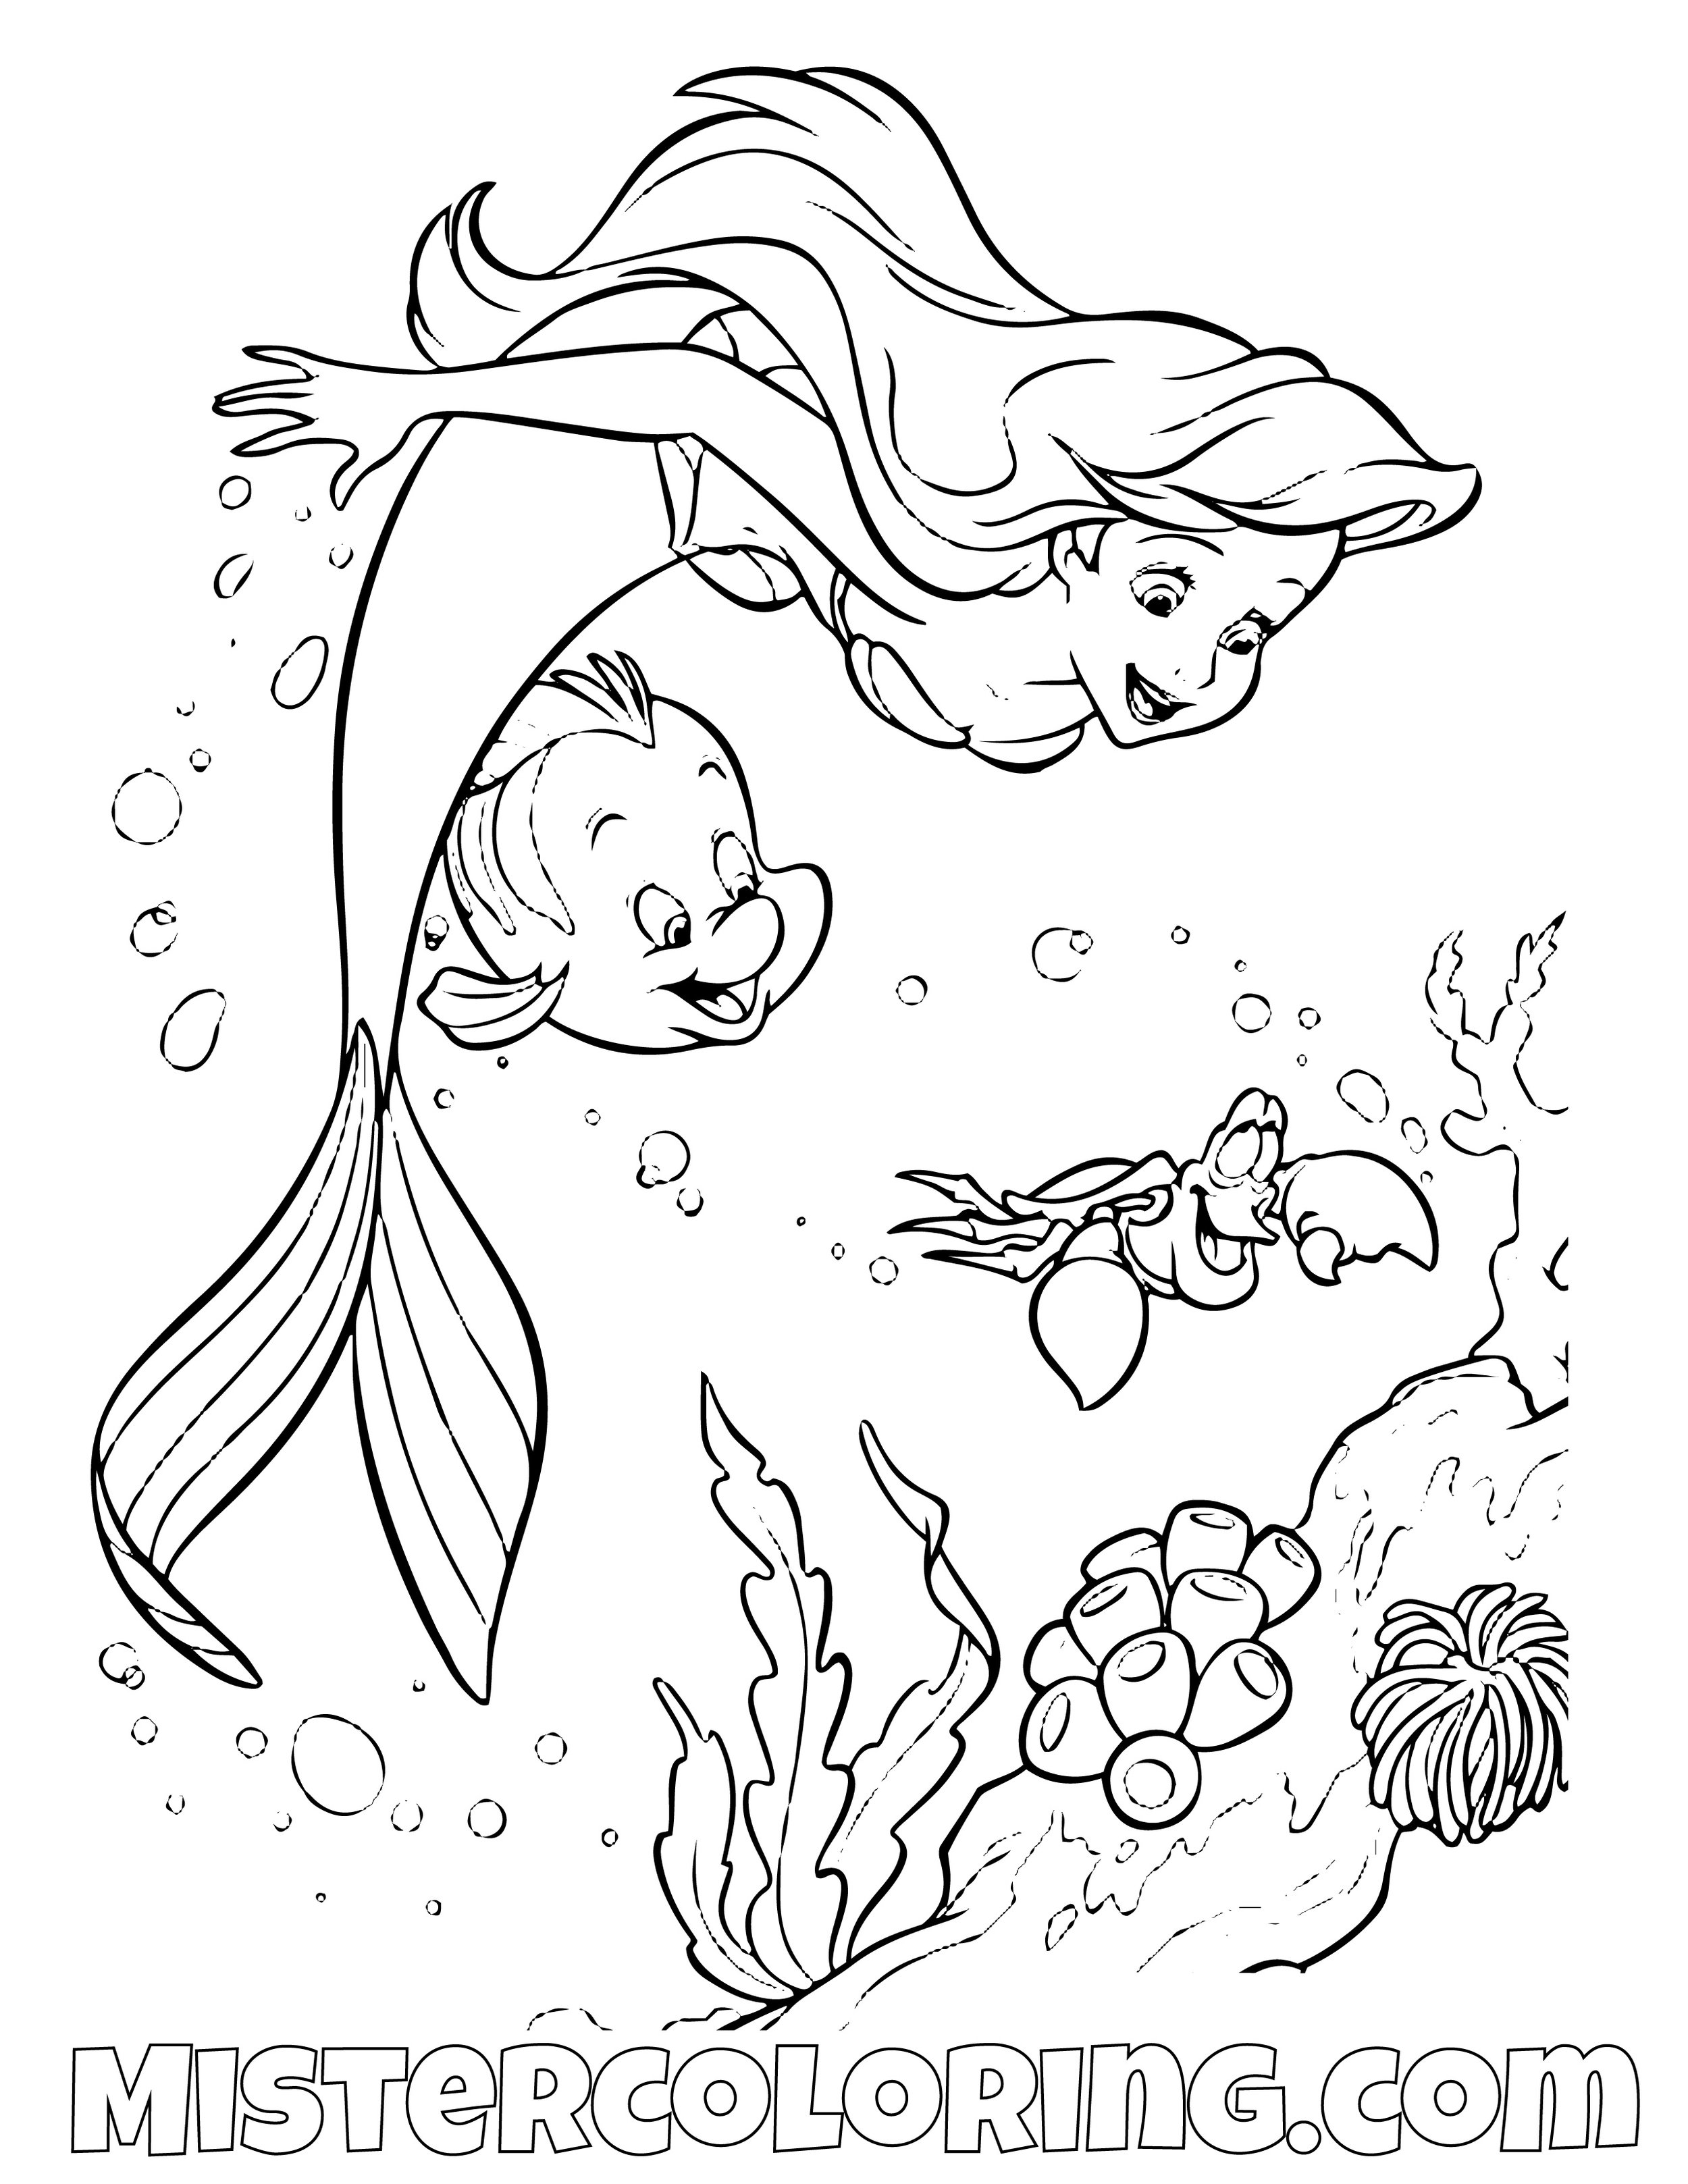 - The Little Mermaid Coloring Pages — Mister Coloring